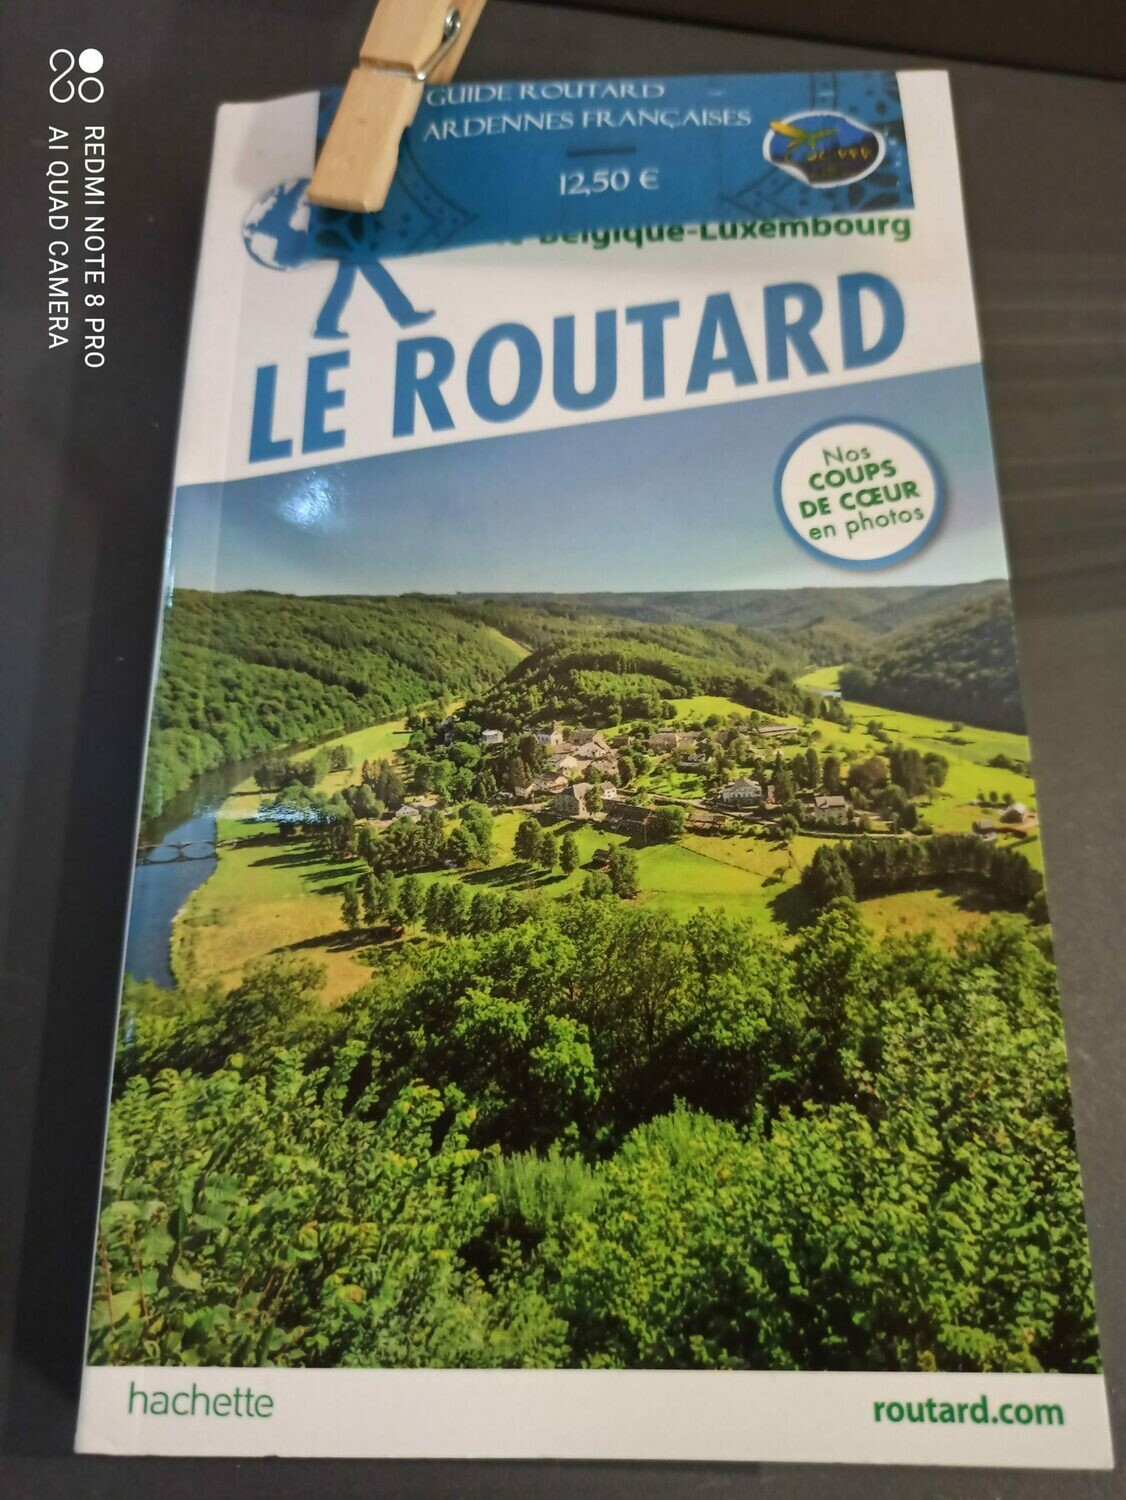 Ardenne le Routard